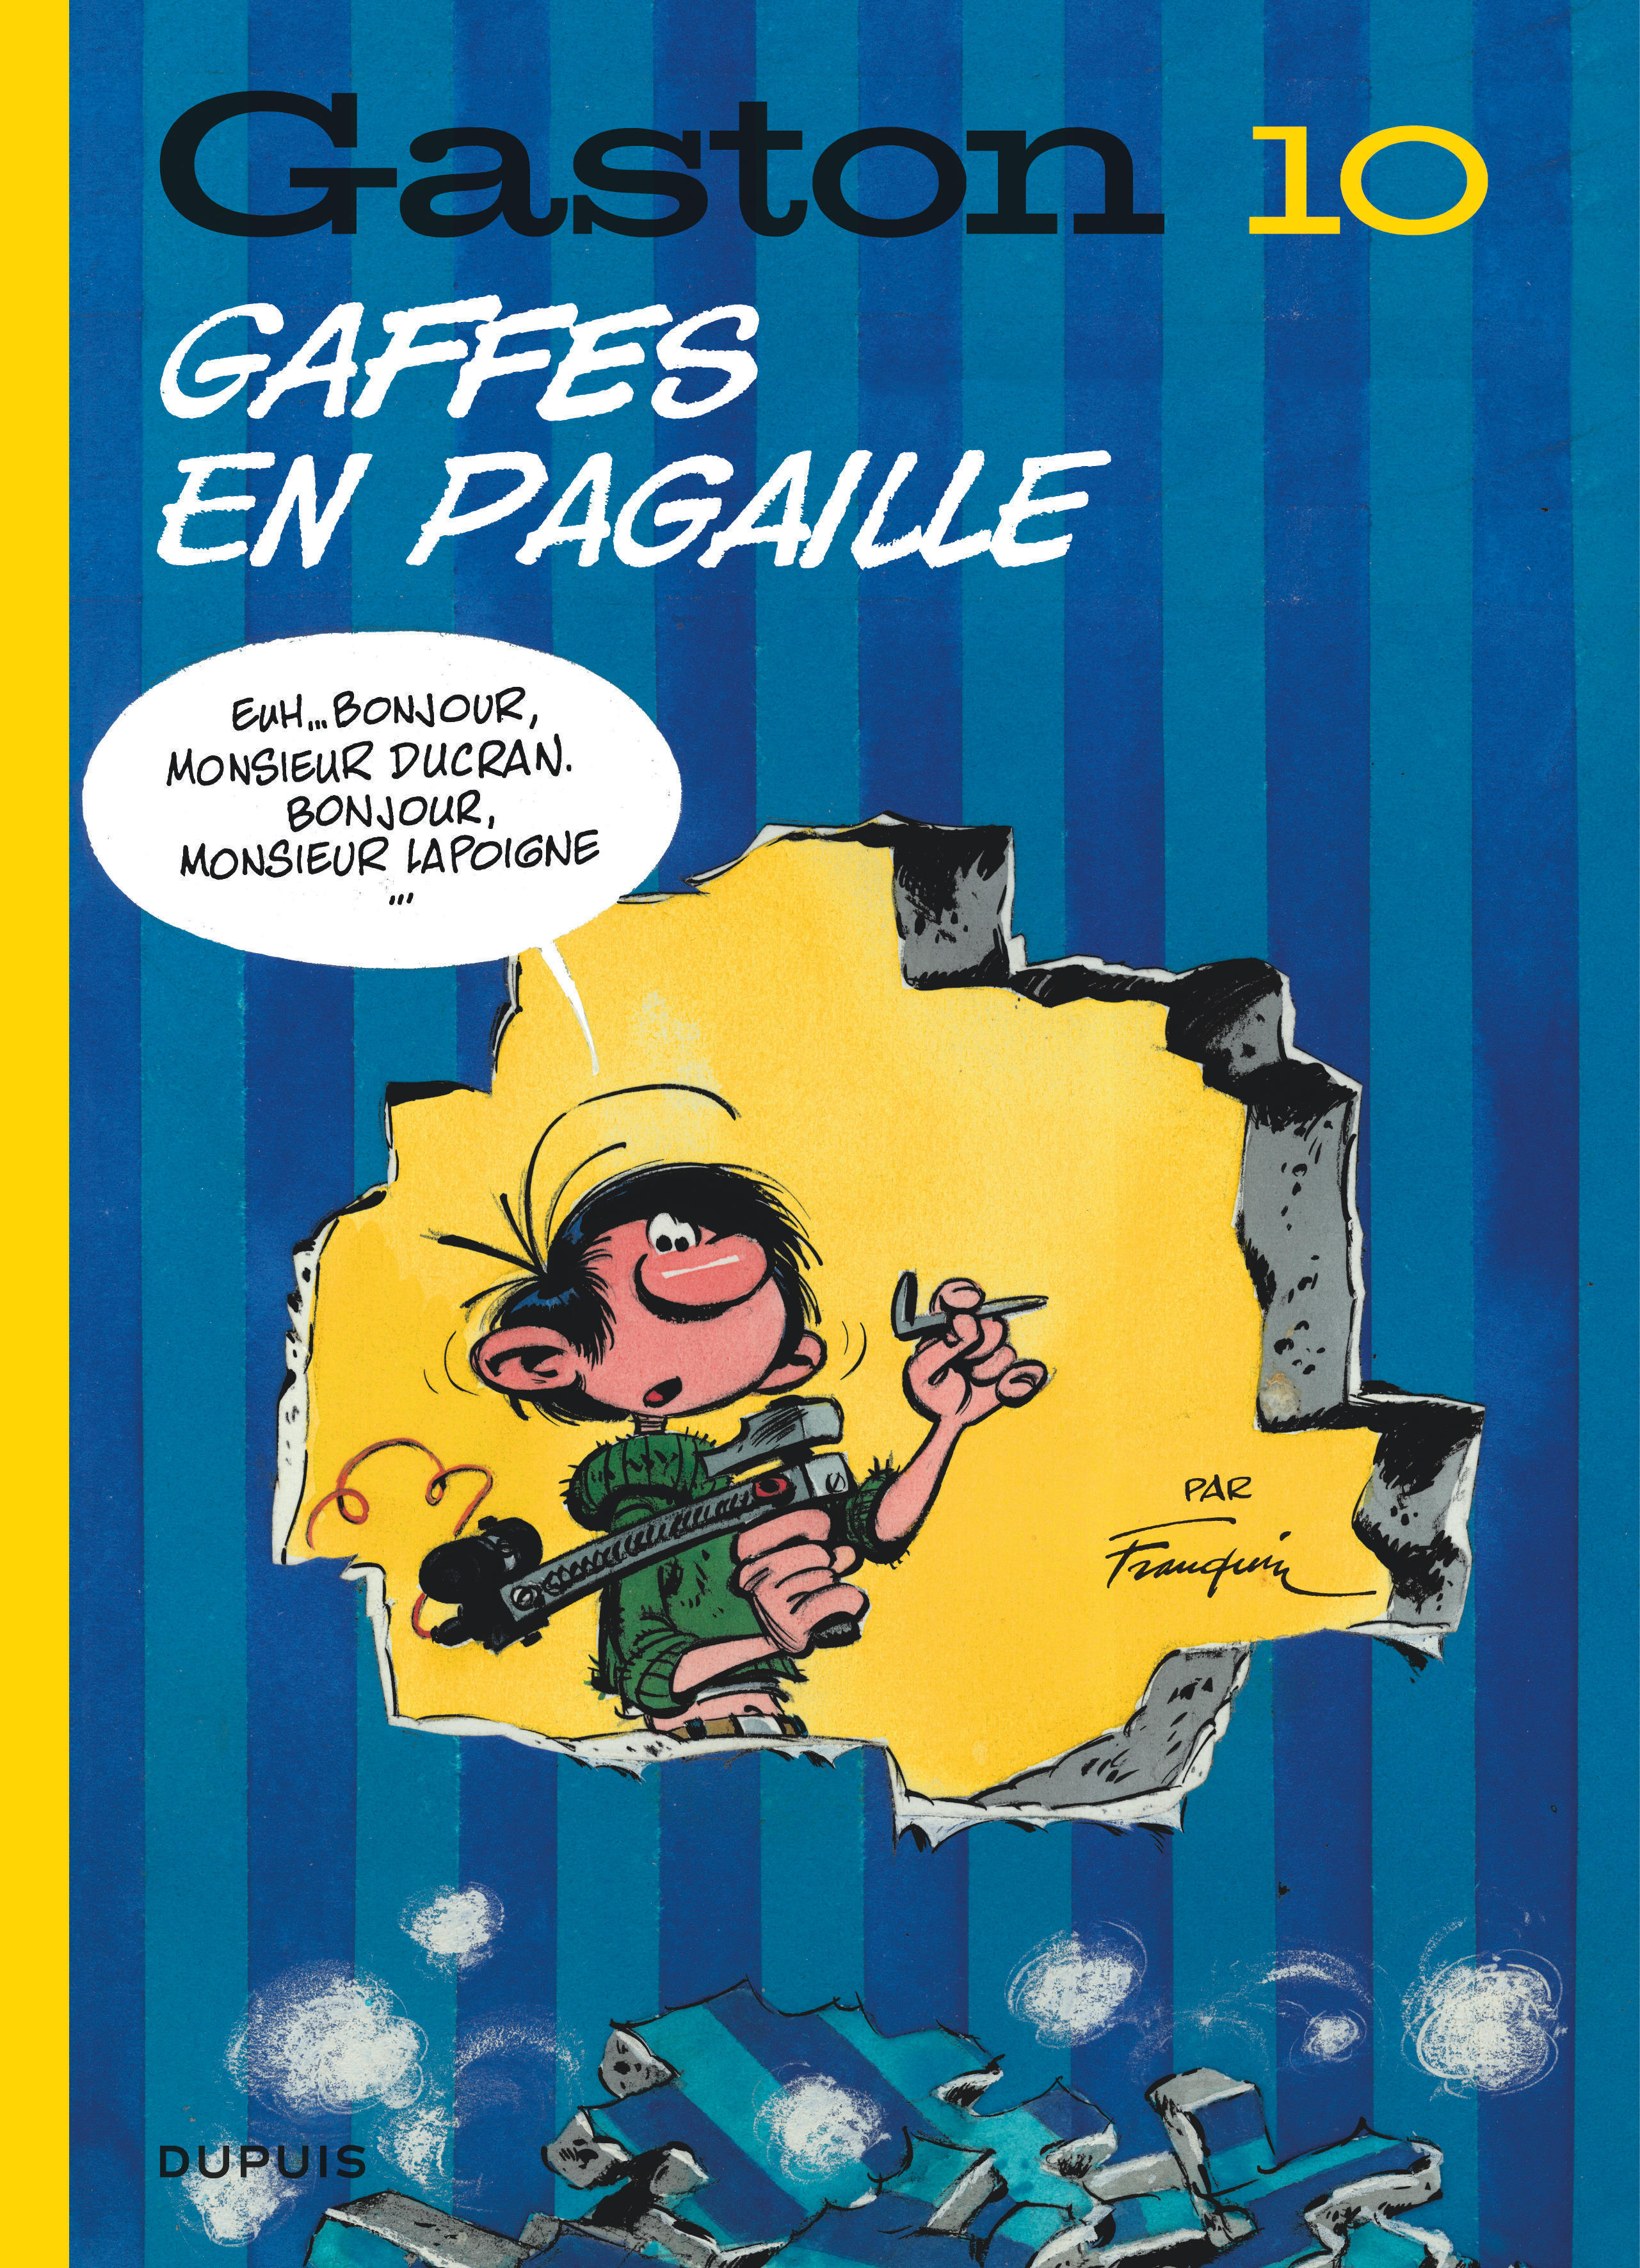 GASTON (EDITION 2018) T10 GASTON (EDITION 2018) - TOME 10 - GAFFES EN PAGAILLE (EDITION 2018)